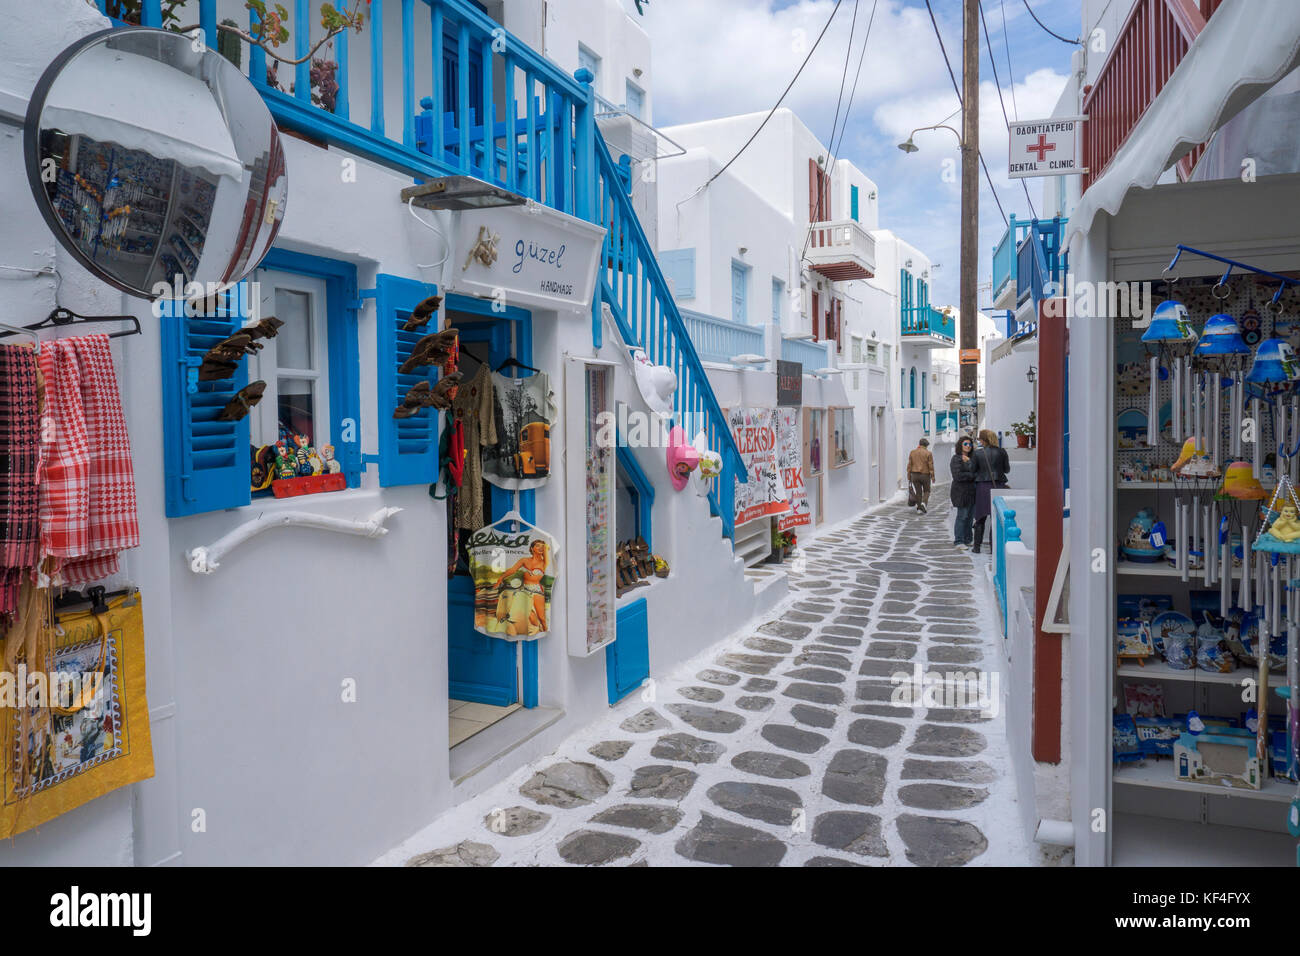 Souvenir shops at a narrow alley, Mykonos-town, Mykonos, Cyclades, Aegean, Greece - Stock Image